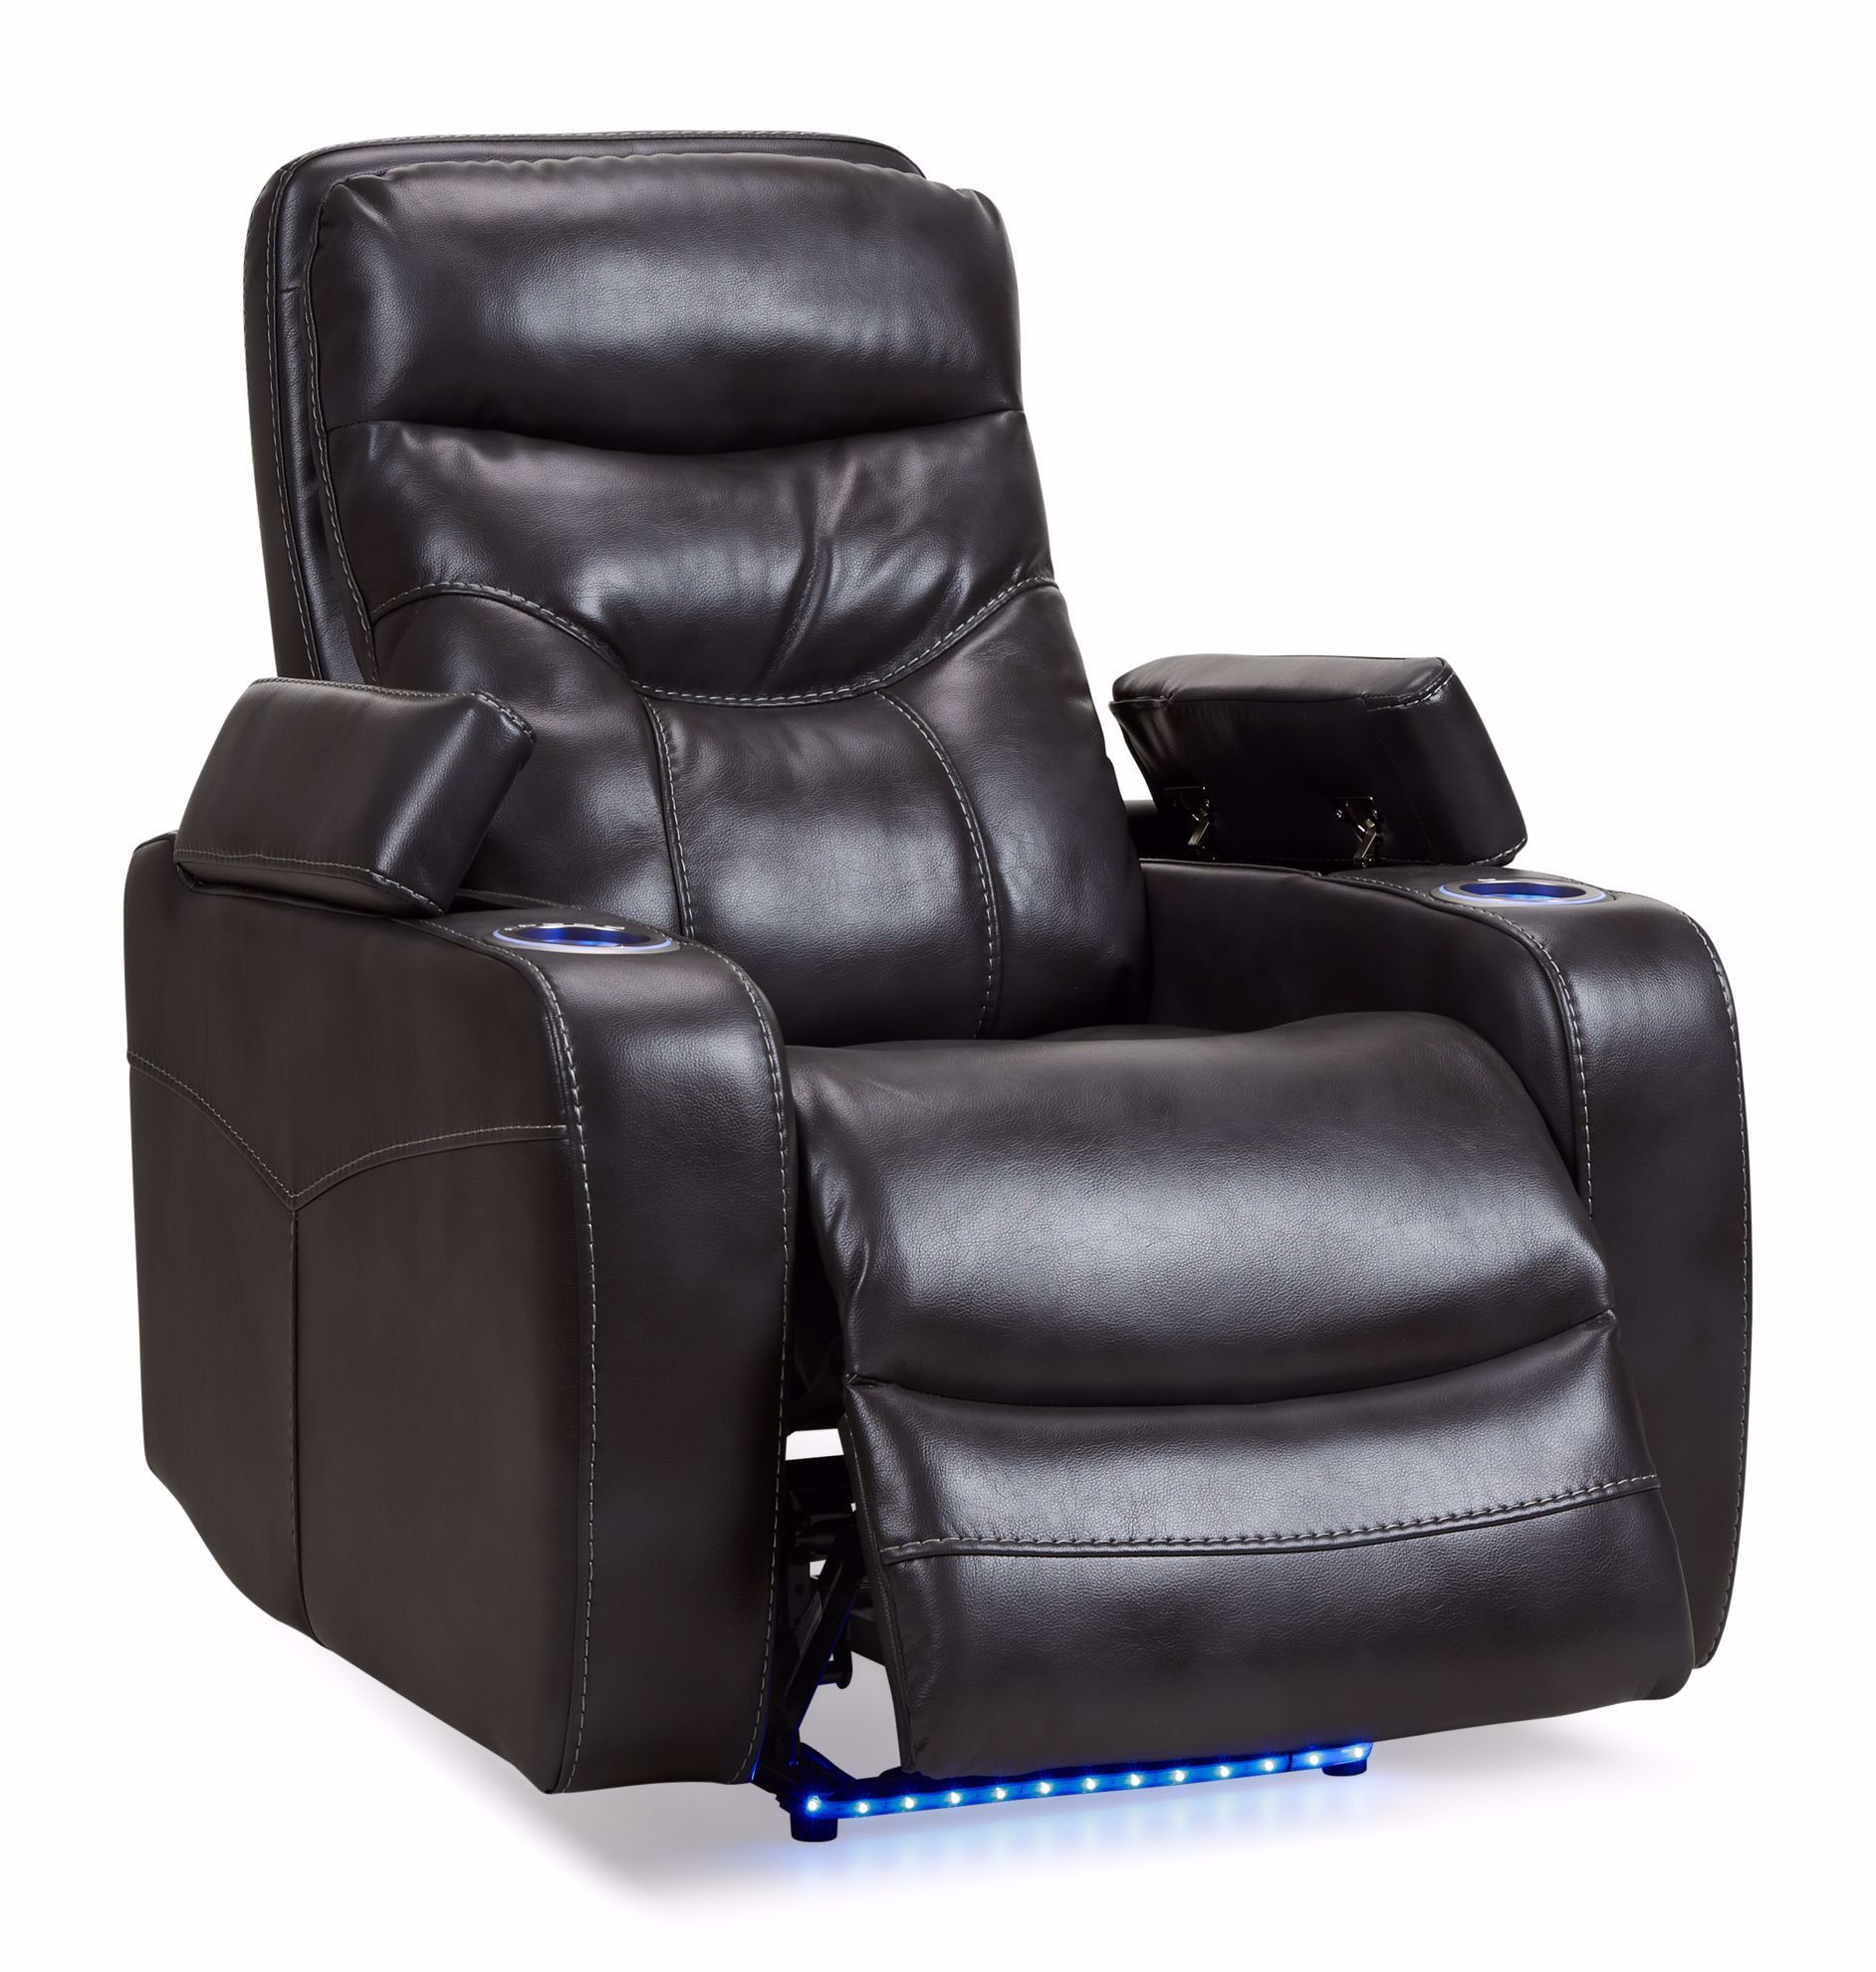 Picture of Oxford Slate Power Recliner With Lights